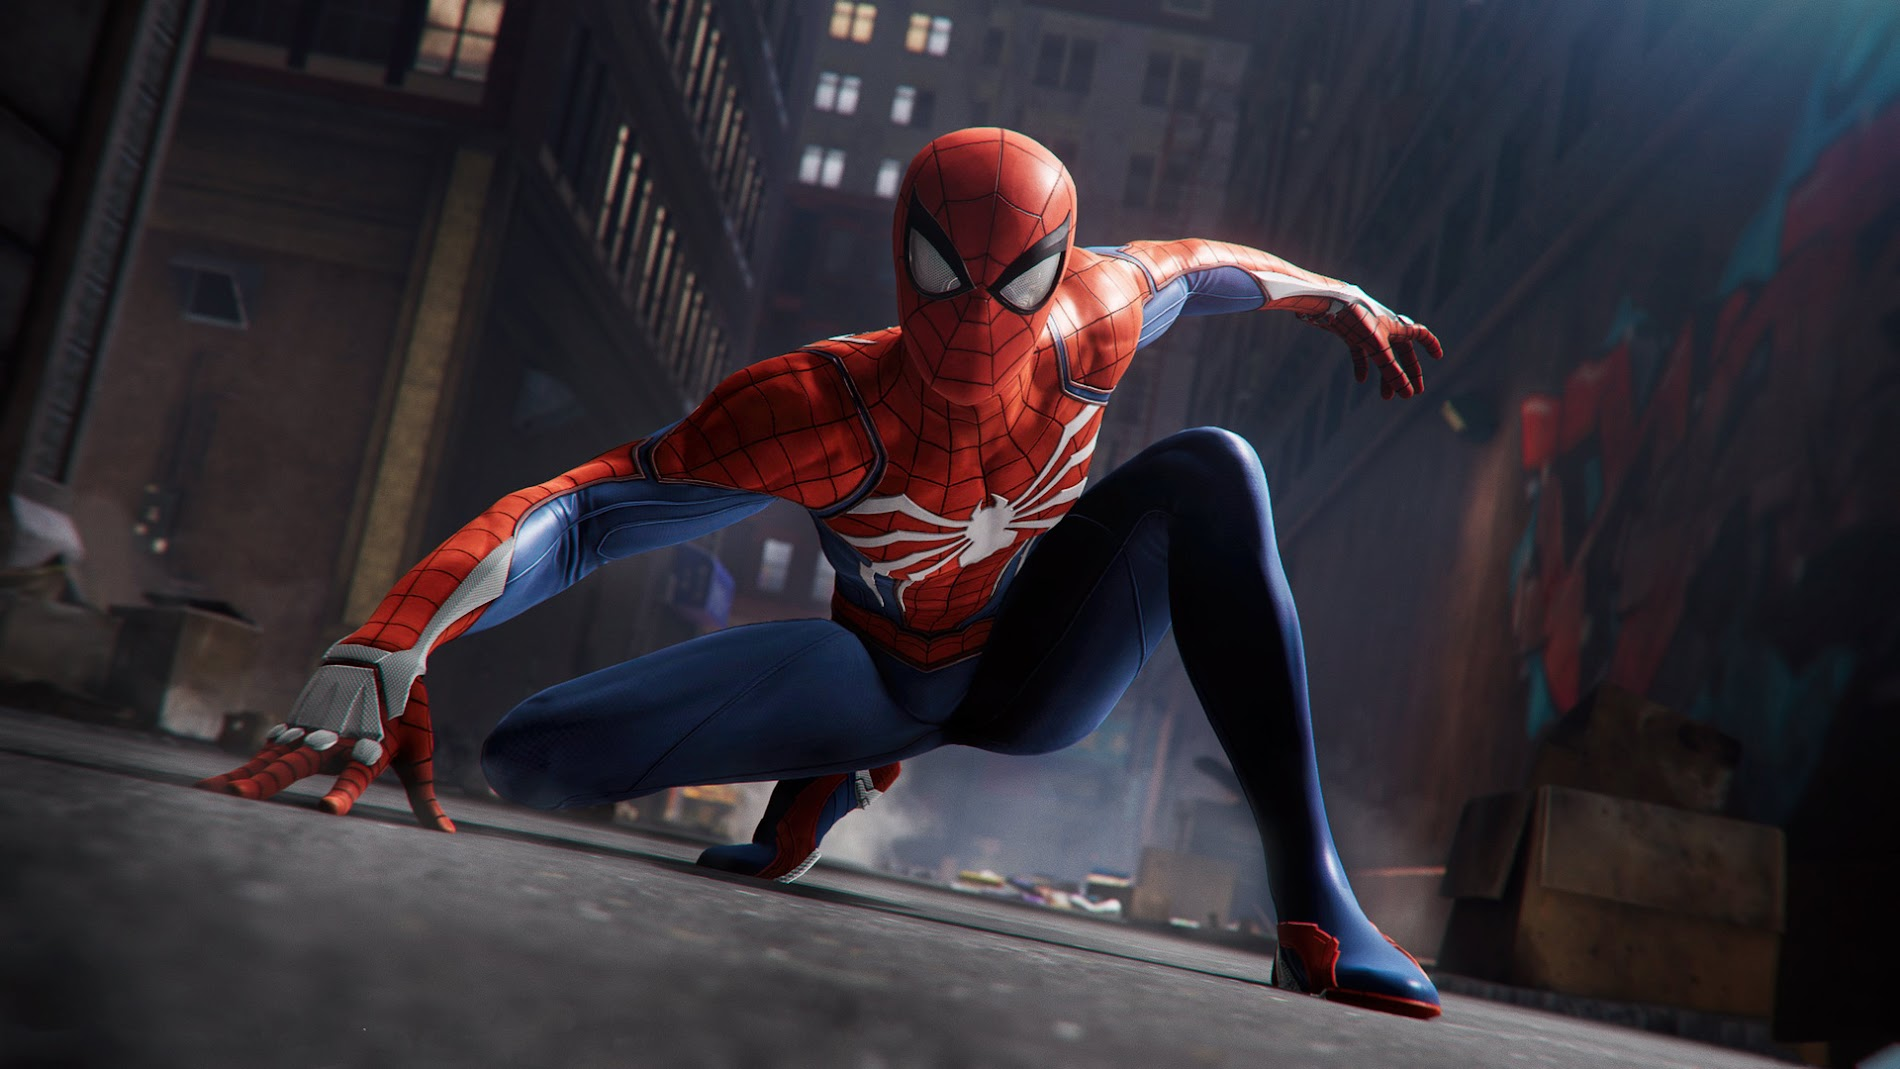 Download Spiderman Wallpaper From The Above Display Resolutions For HD Widescreen 4K UHD 5K 8K Ultra Desktop Monitors Android Apple IPhone Mobiles